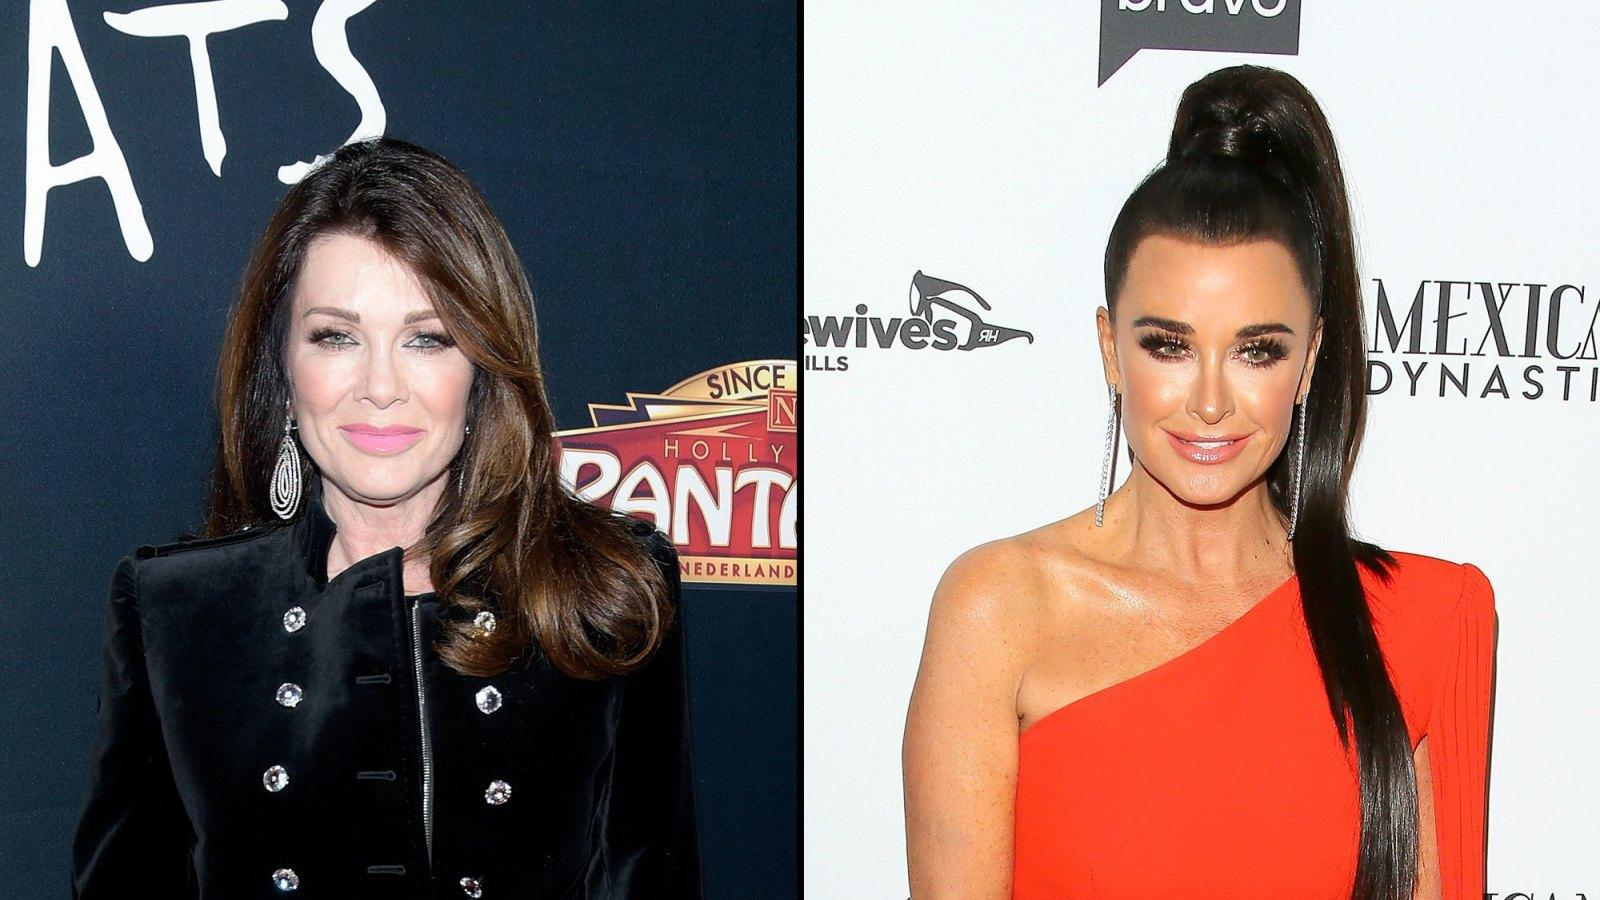 Lisa Vanderpump - Here's How She Reacted To Being Called A Liar By Nemesis Kyle Richards!